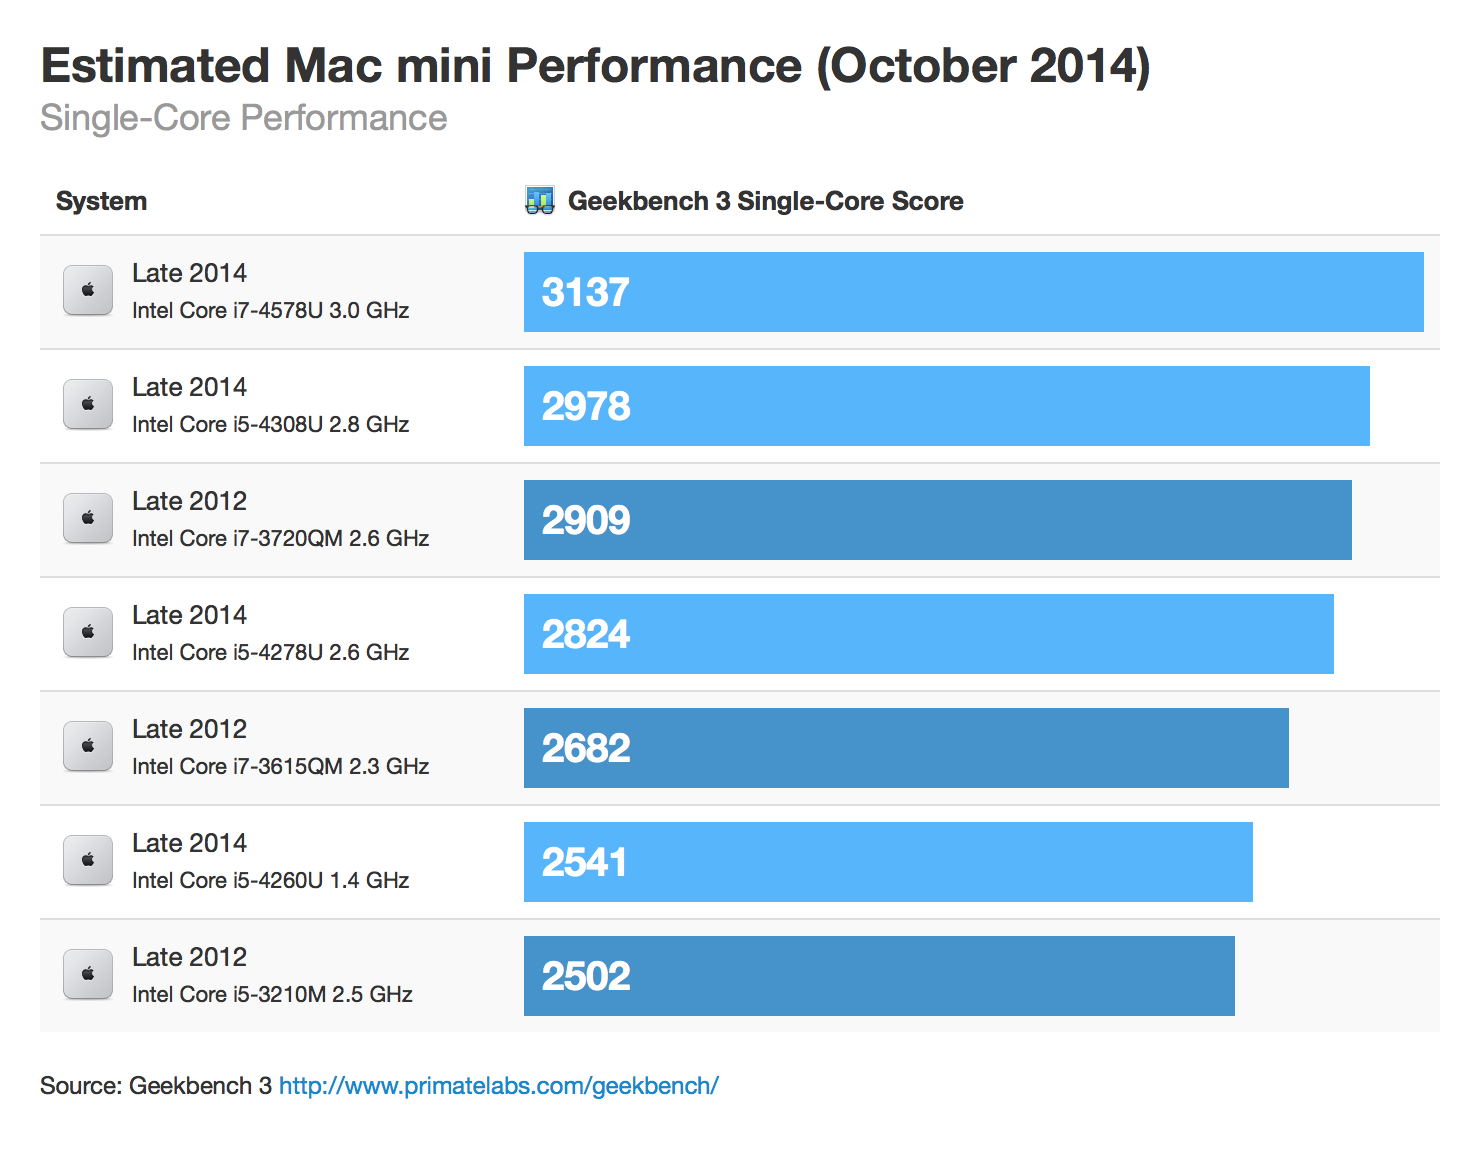 Estimating Mac mini Performance